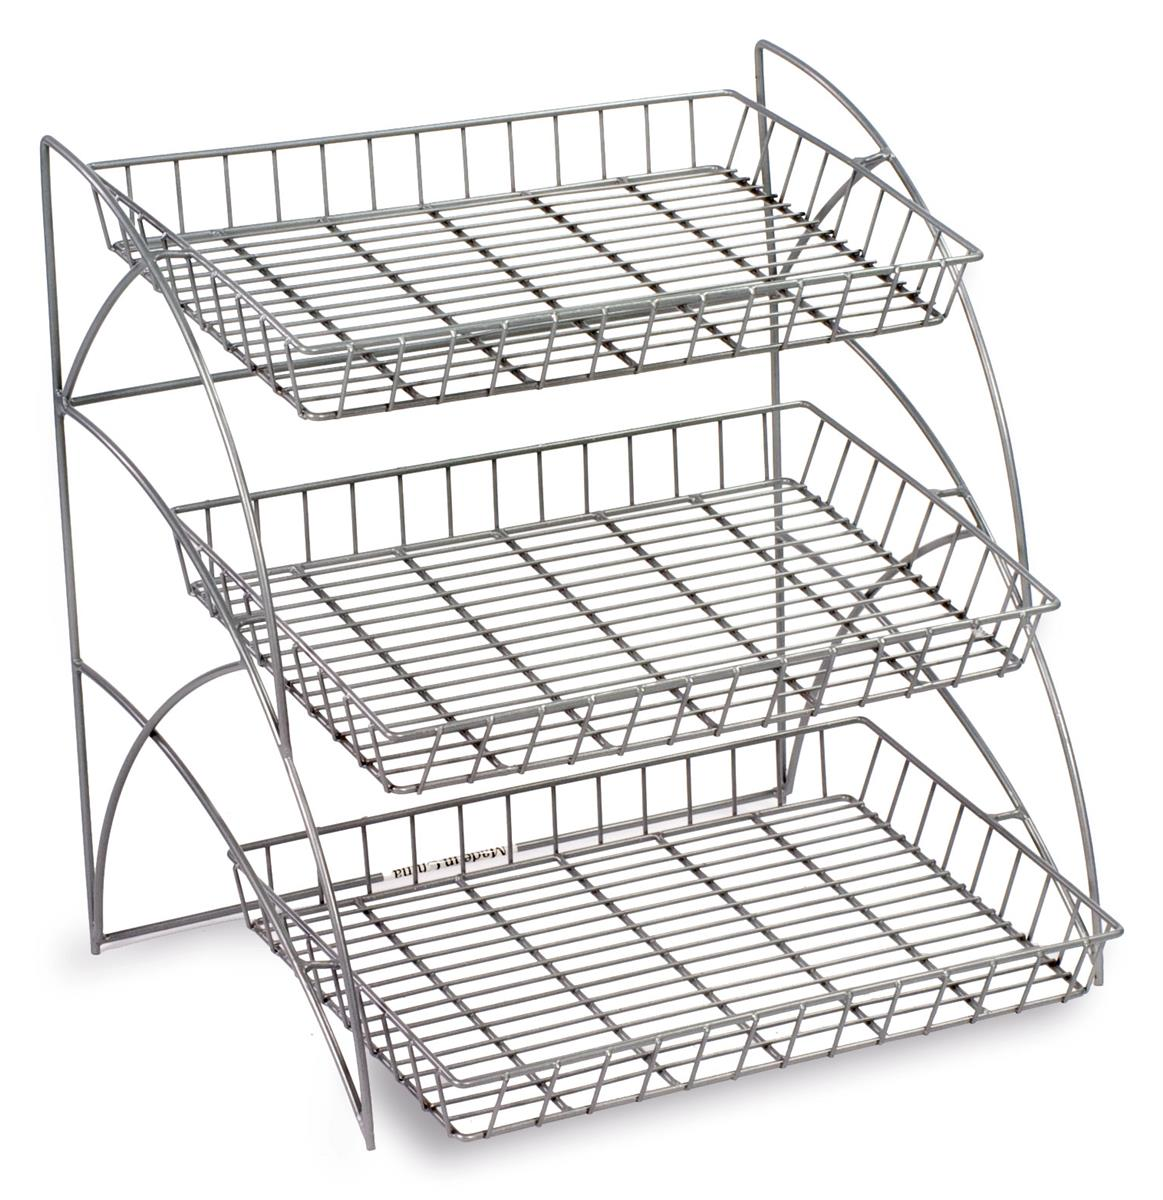 3 tiered wire rack display tabletop 18 w open shelves silver